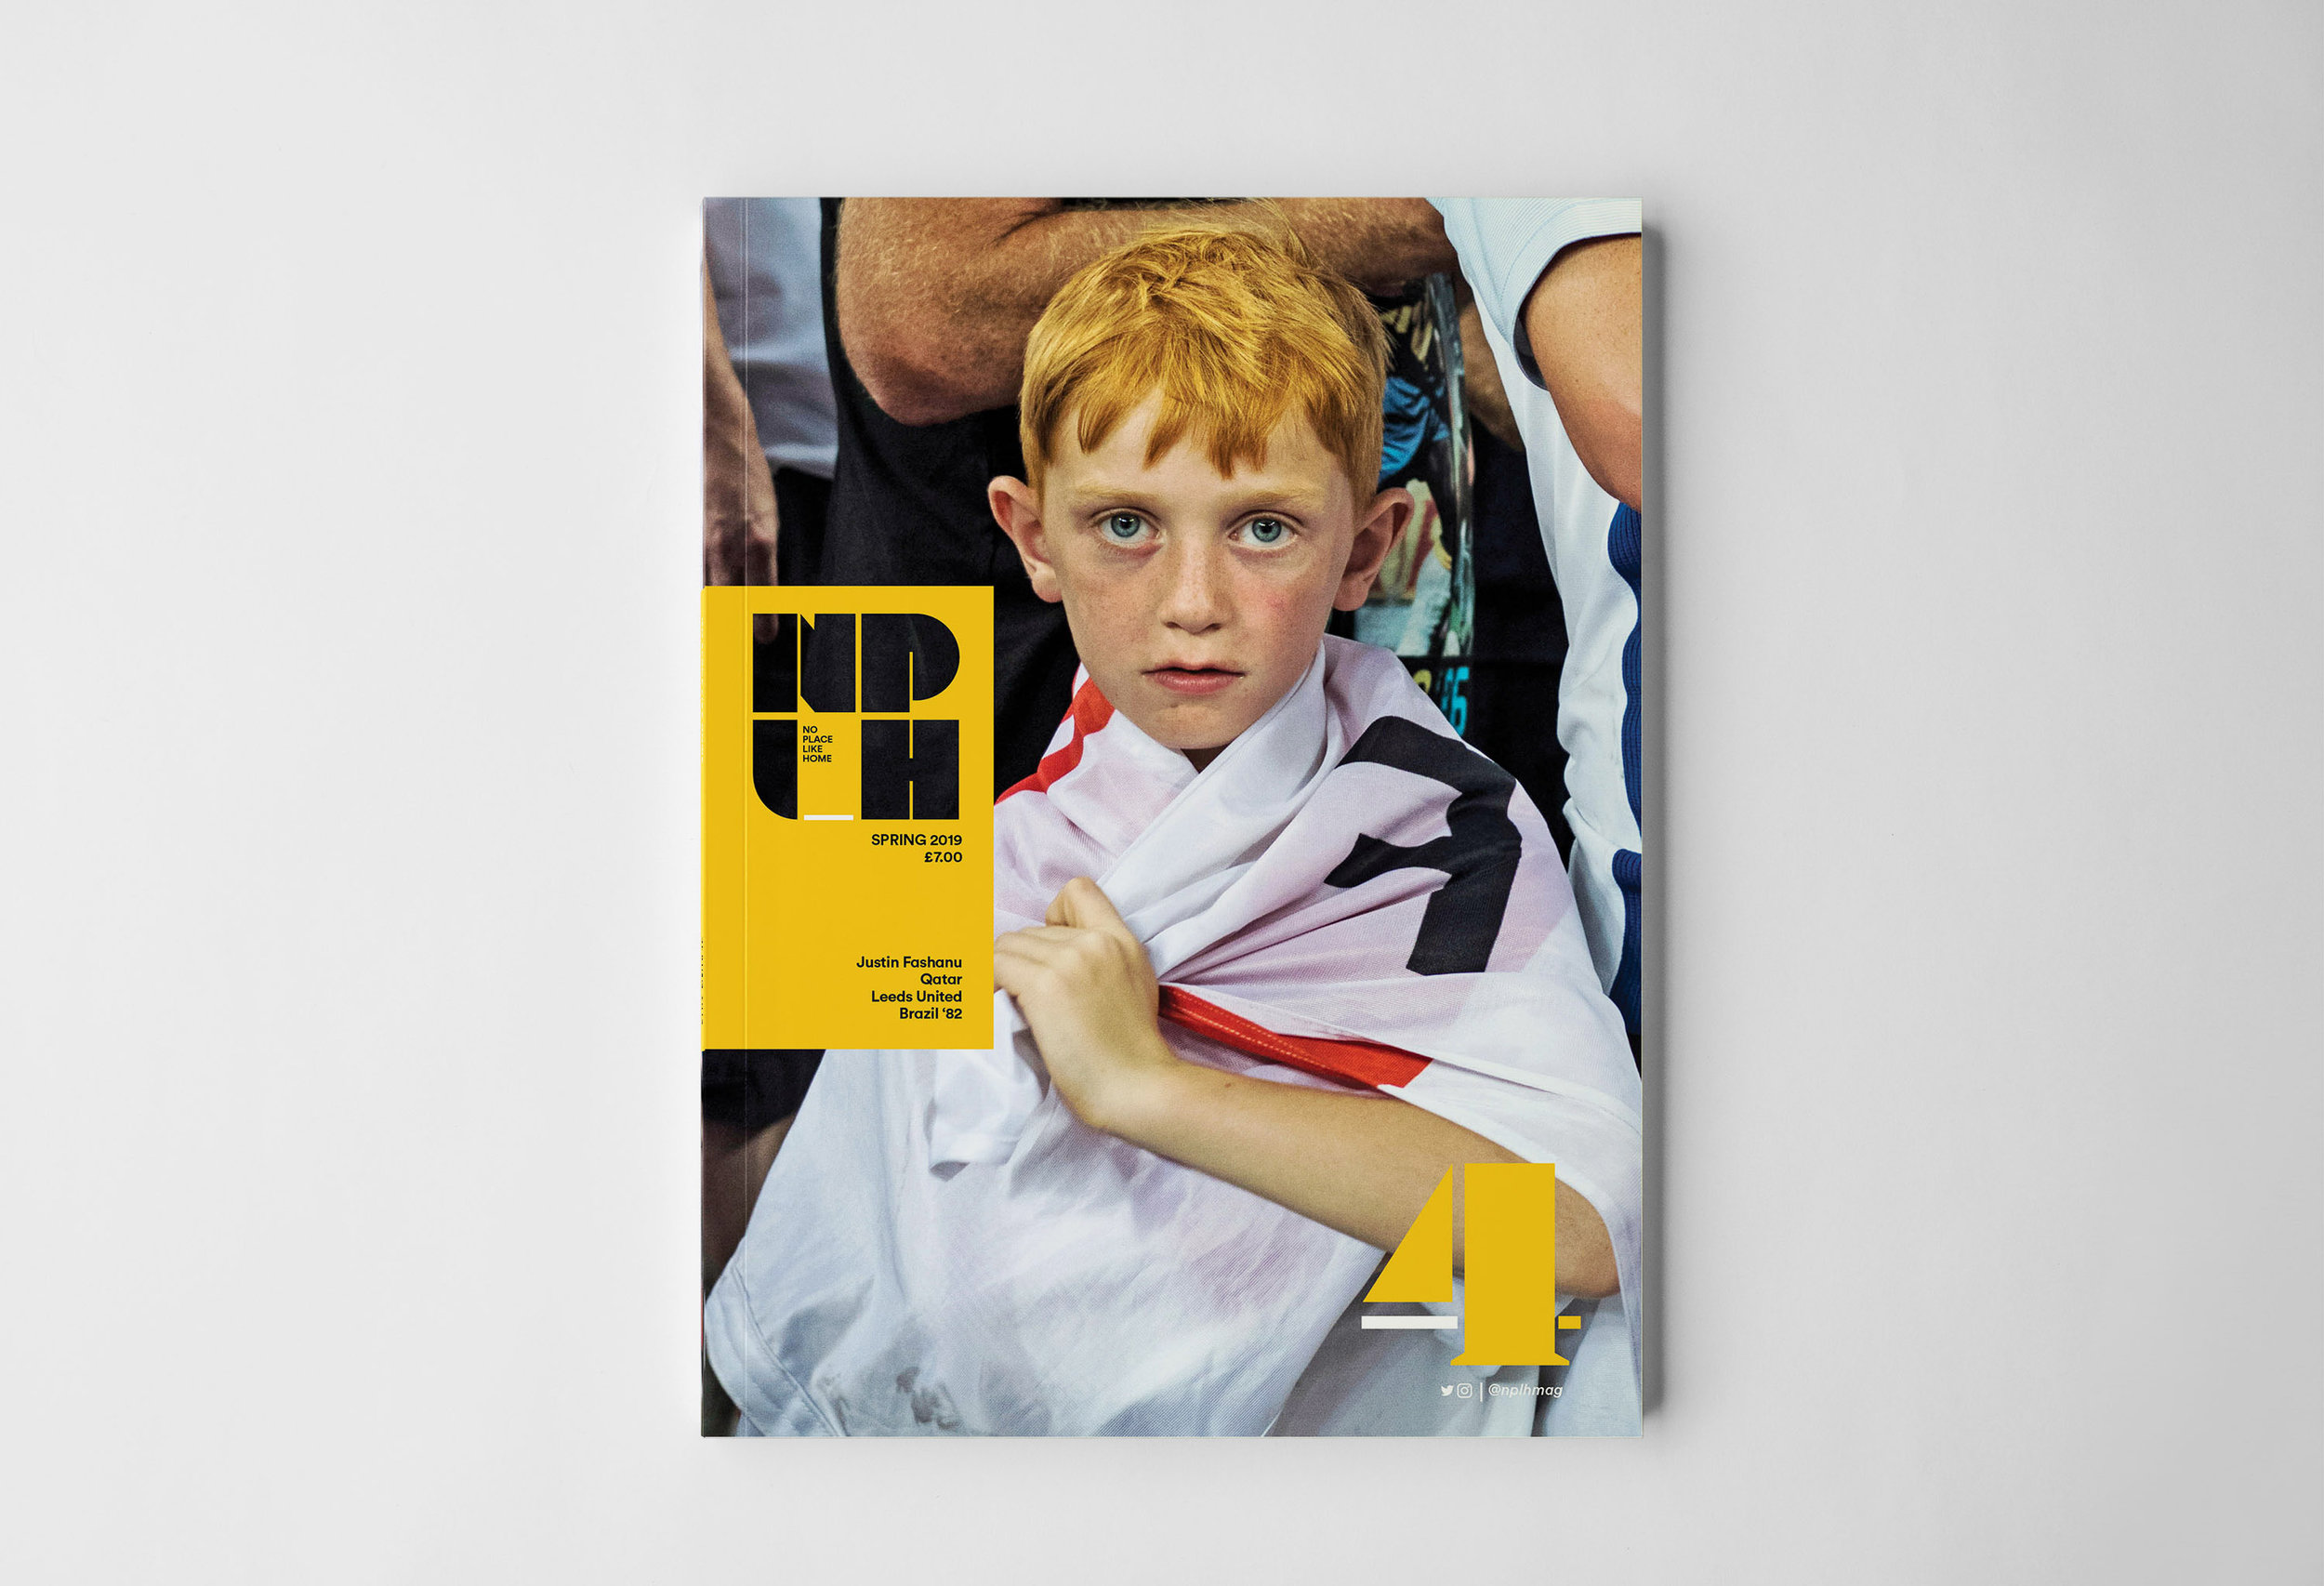 PRE-ORDER ISSUE FOUR HERE